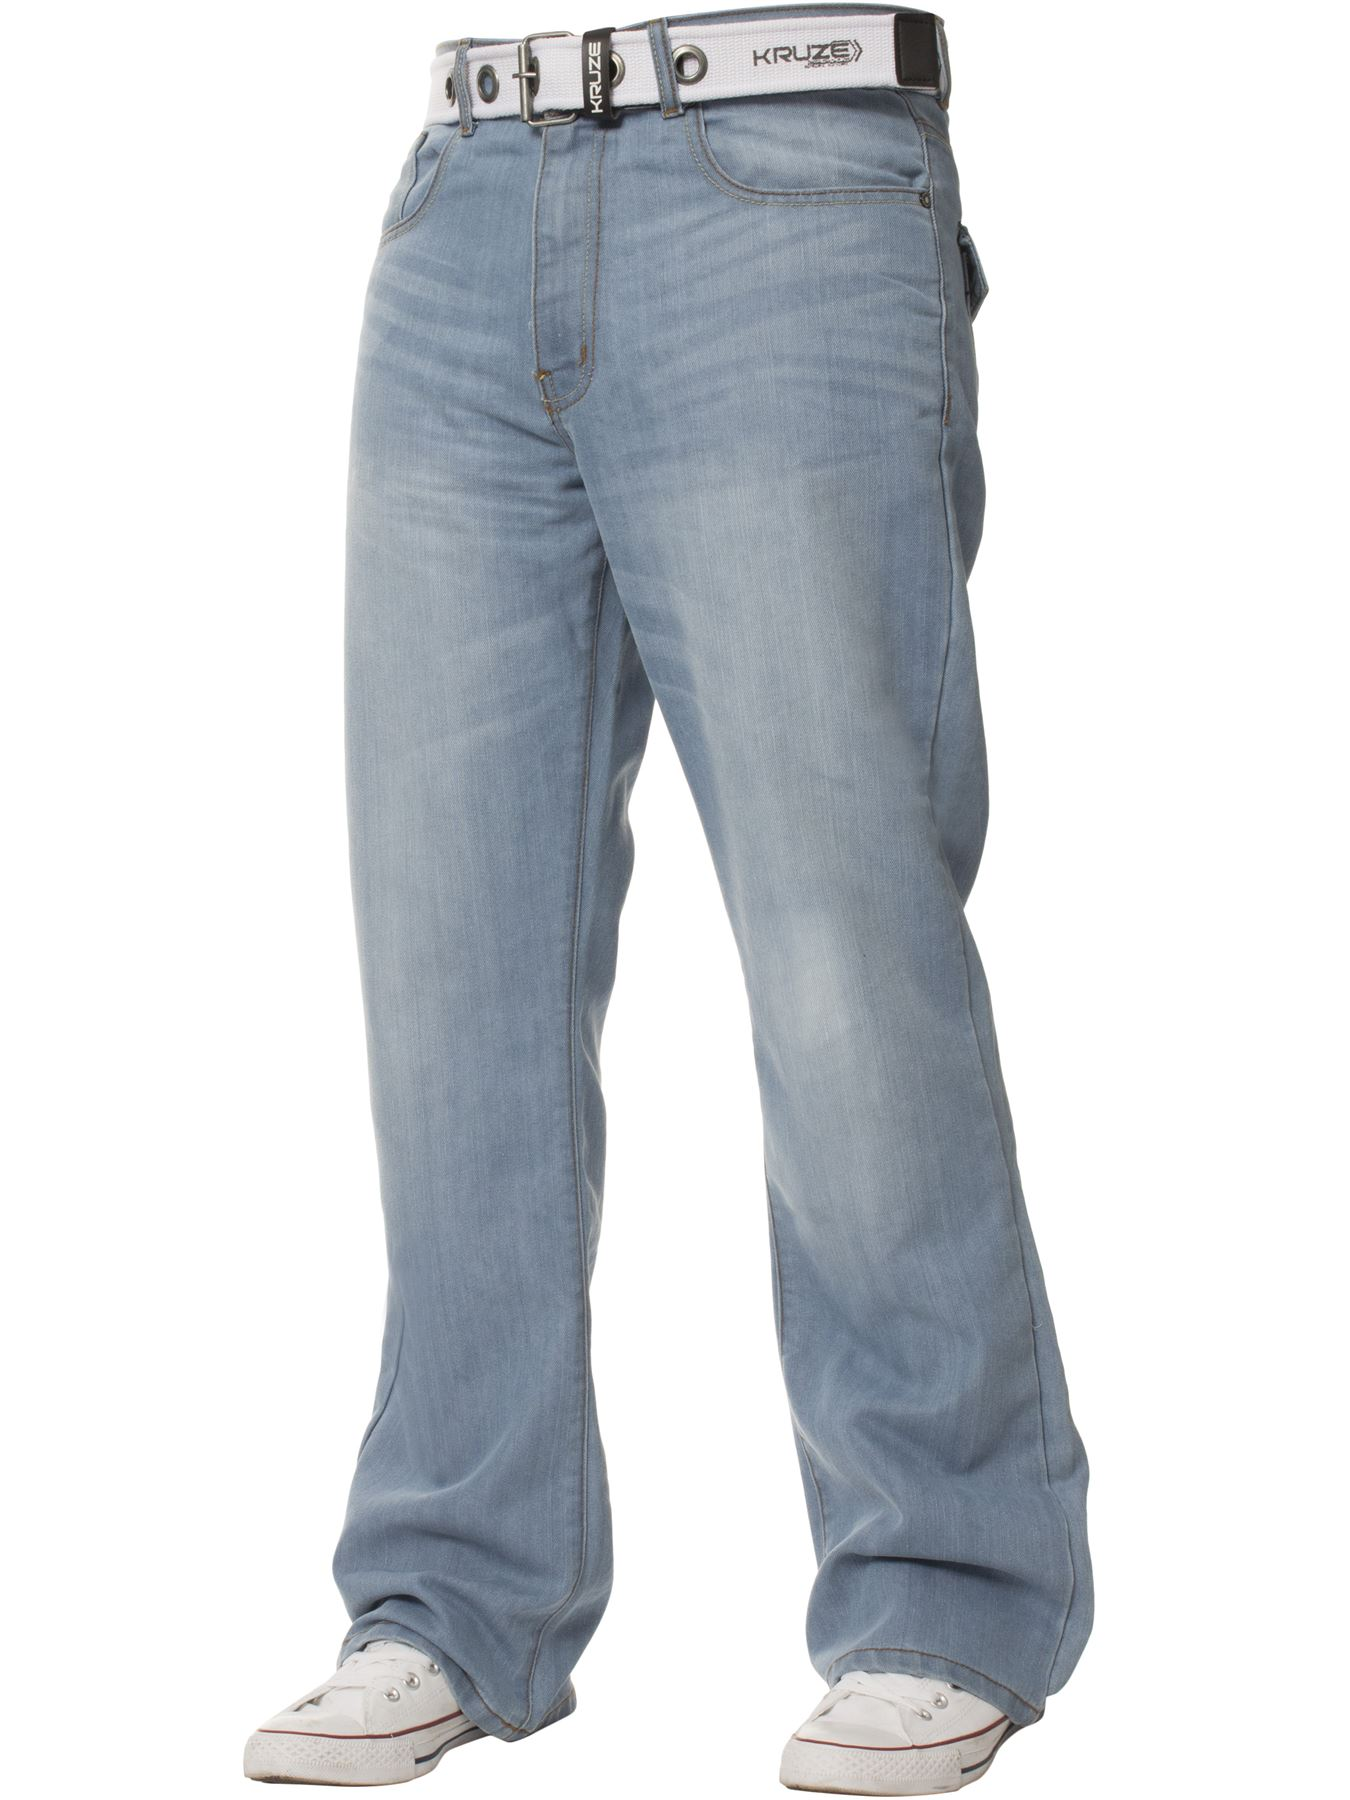 Kruze-Mens-Bootcut-Jeans-Flared-Wide-Leg-Denim-Pants-Big-Tall-King-All-Waists thumbnail 9